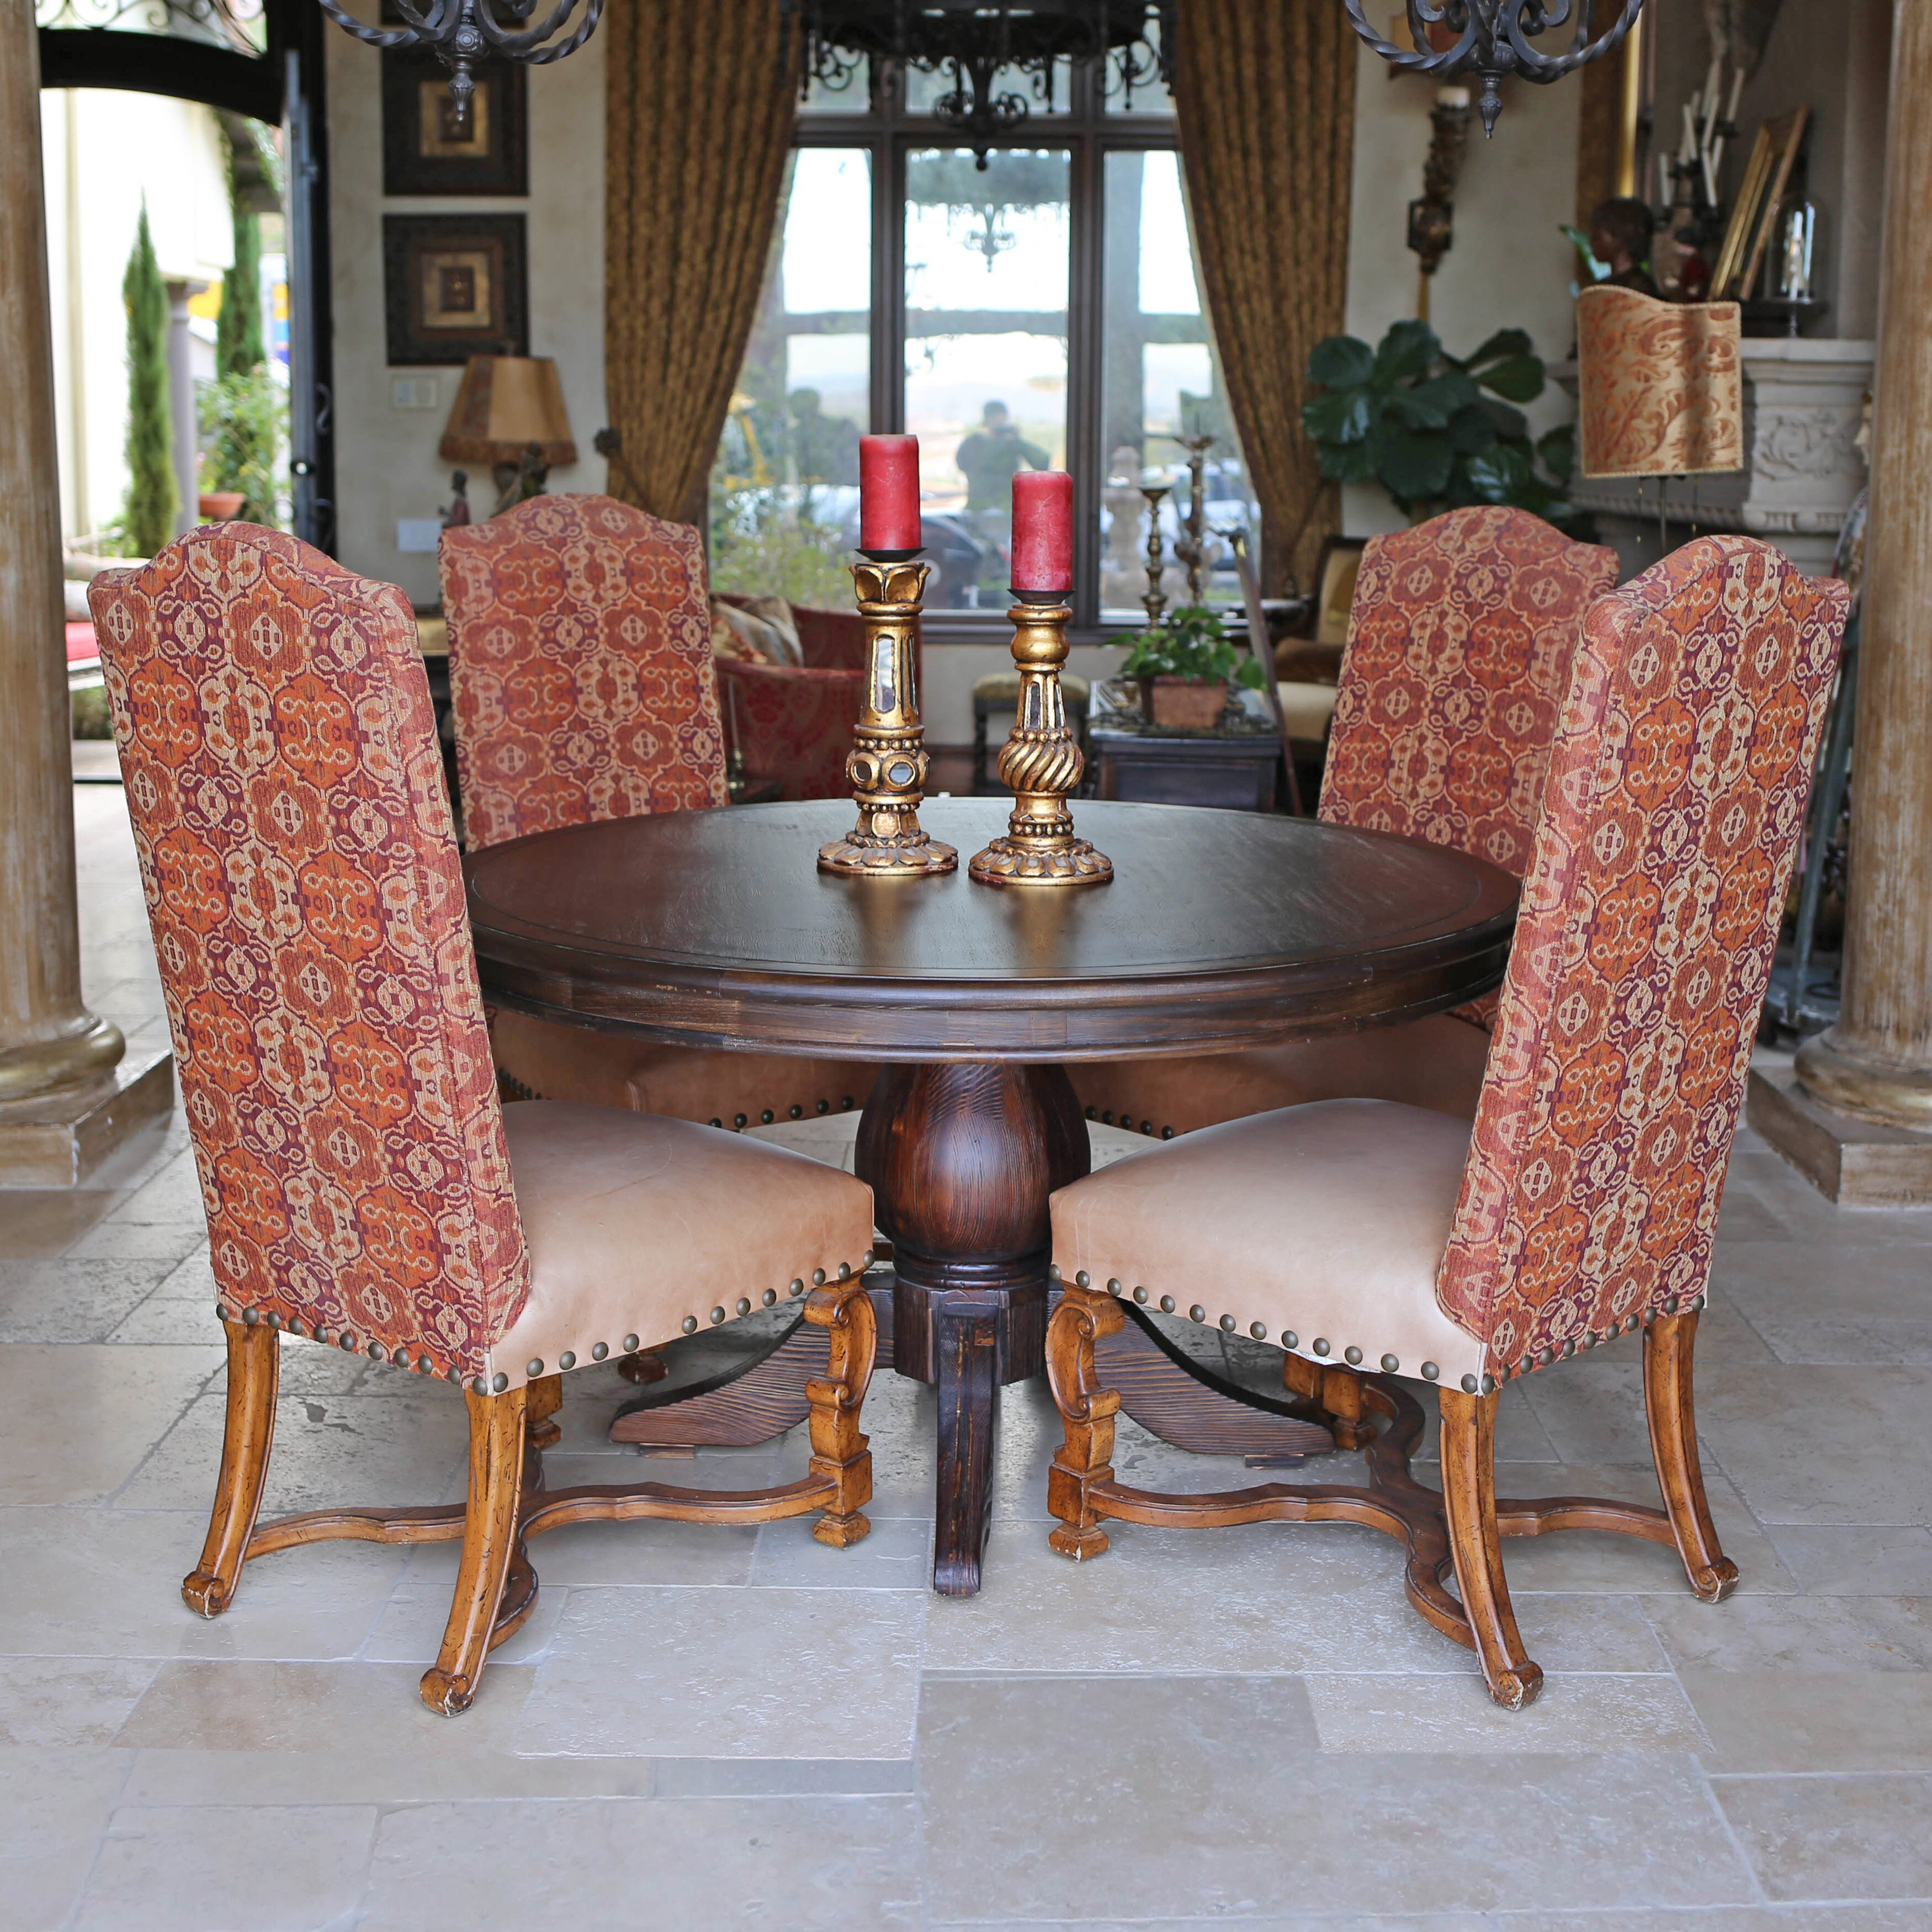 kovethospitality florence reclaimed wood round dining table, Dining tables